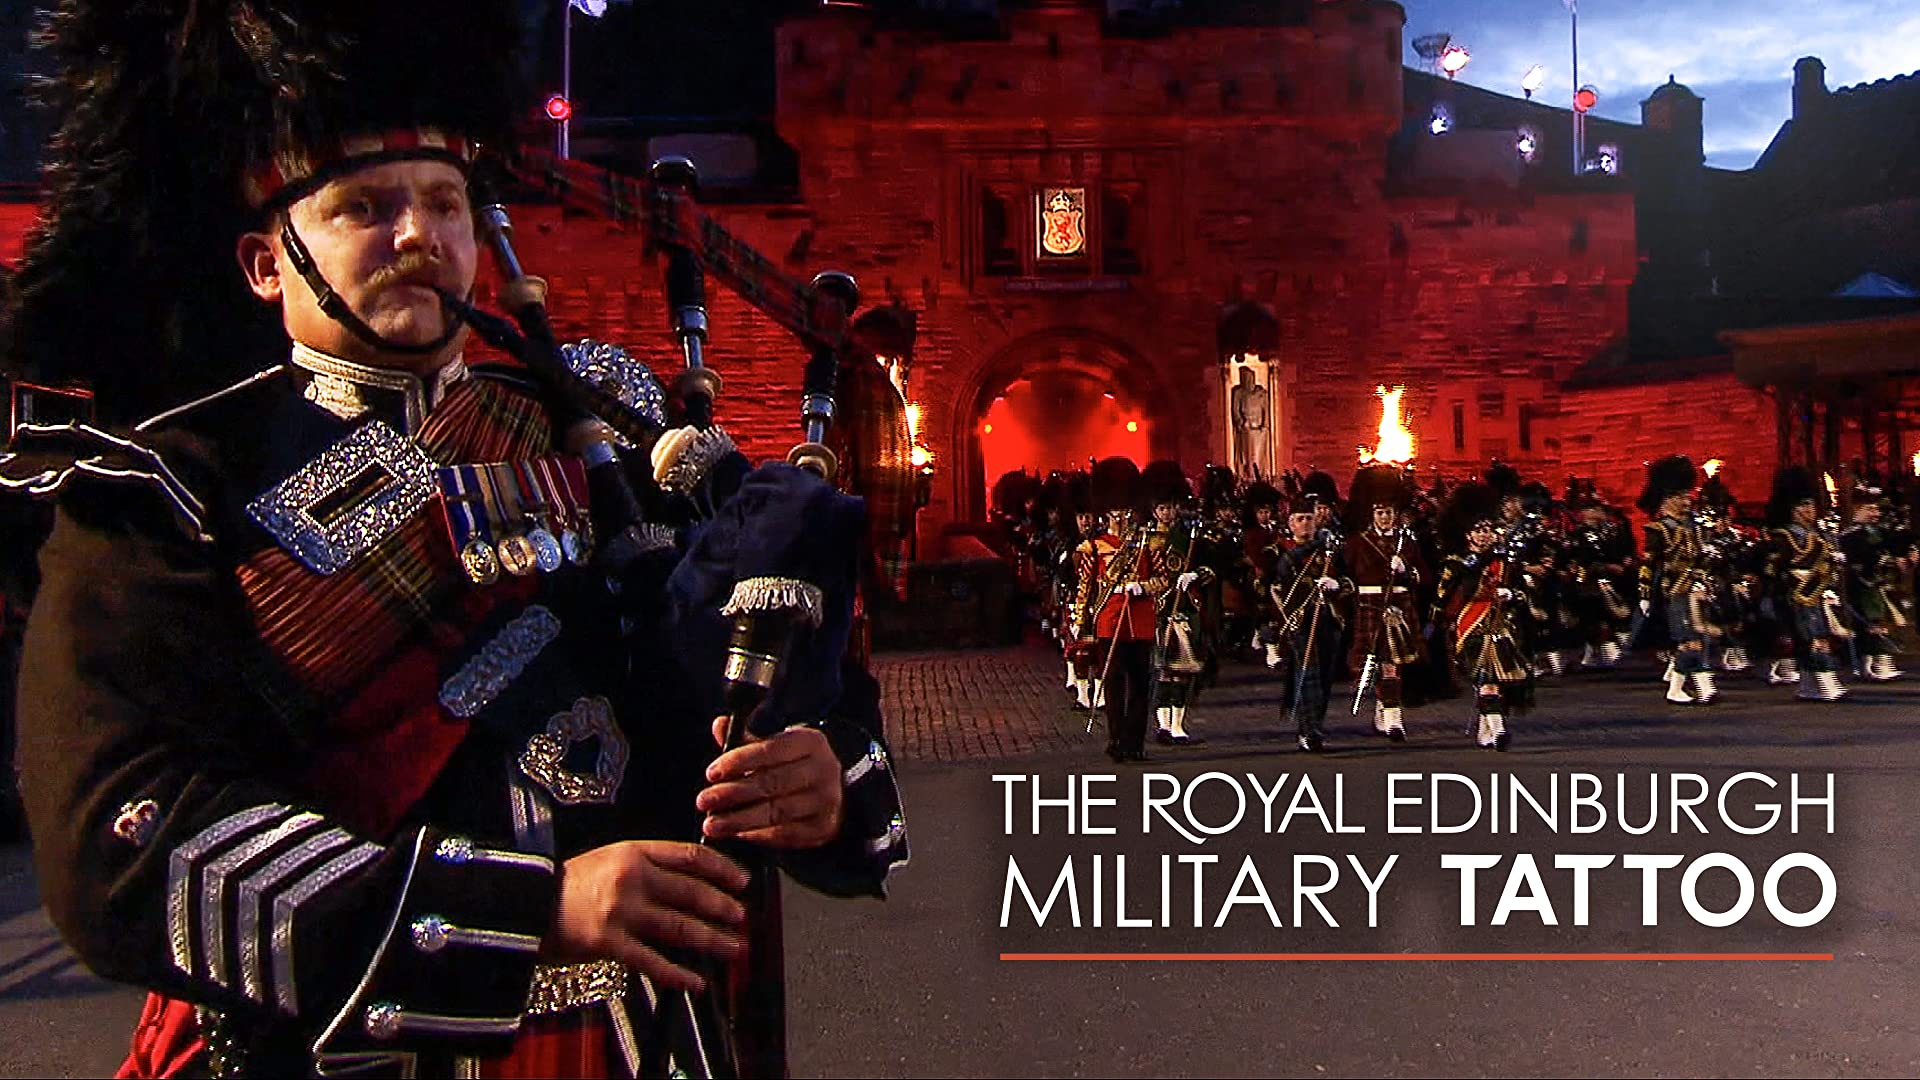 The Royal Edinburgh Military Tattoo (2019)